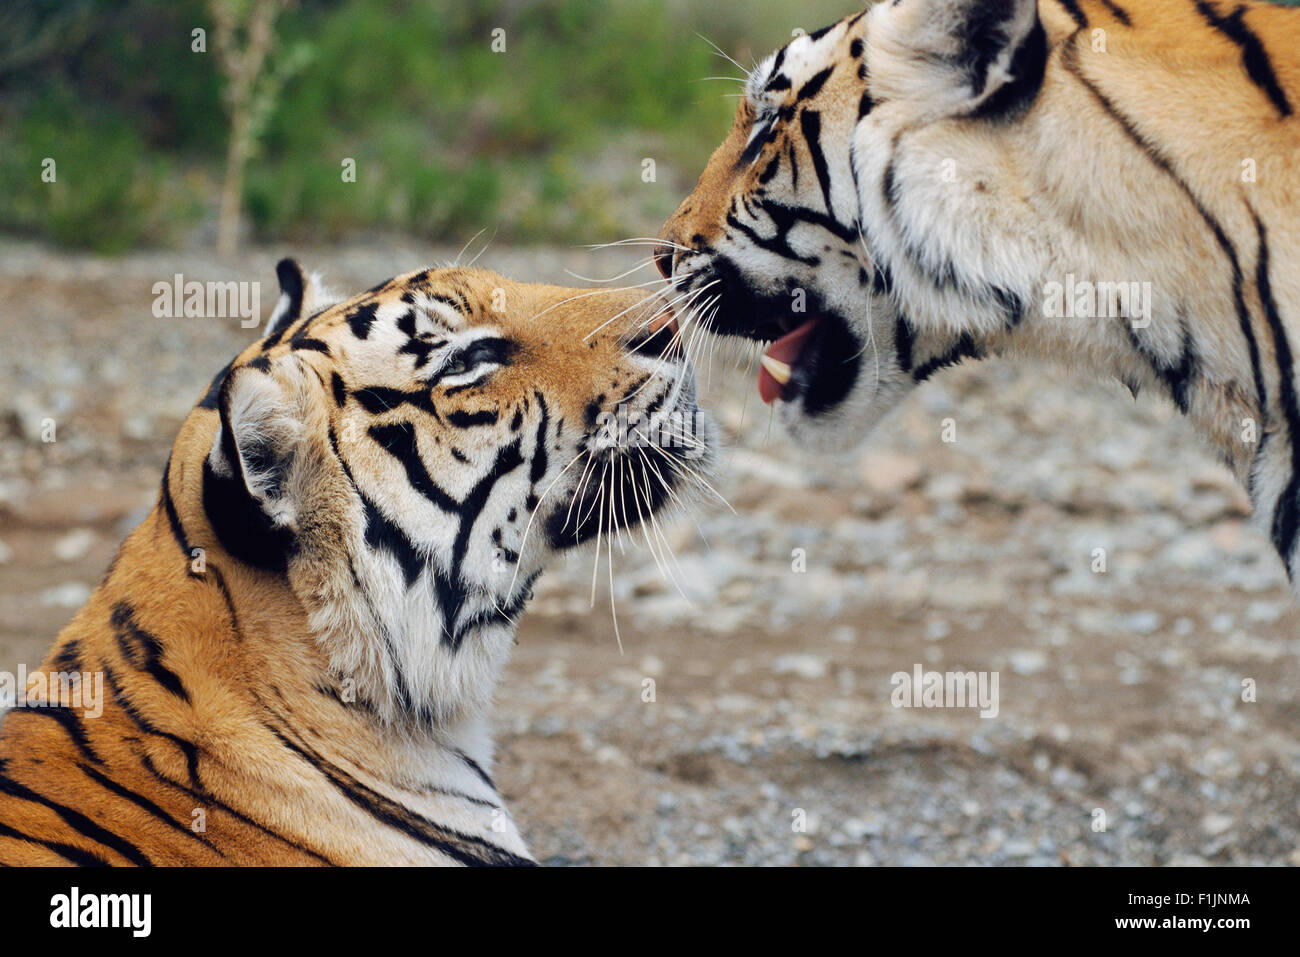 Tigers Touching Noses - Stock Image